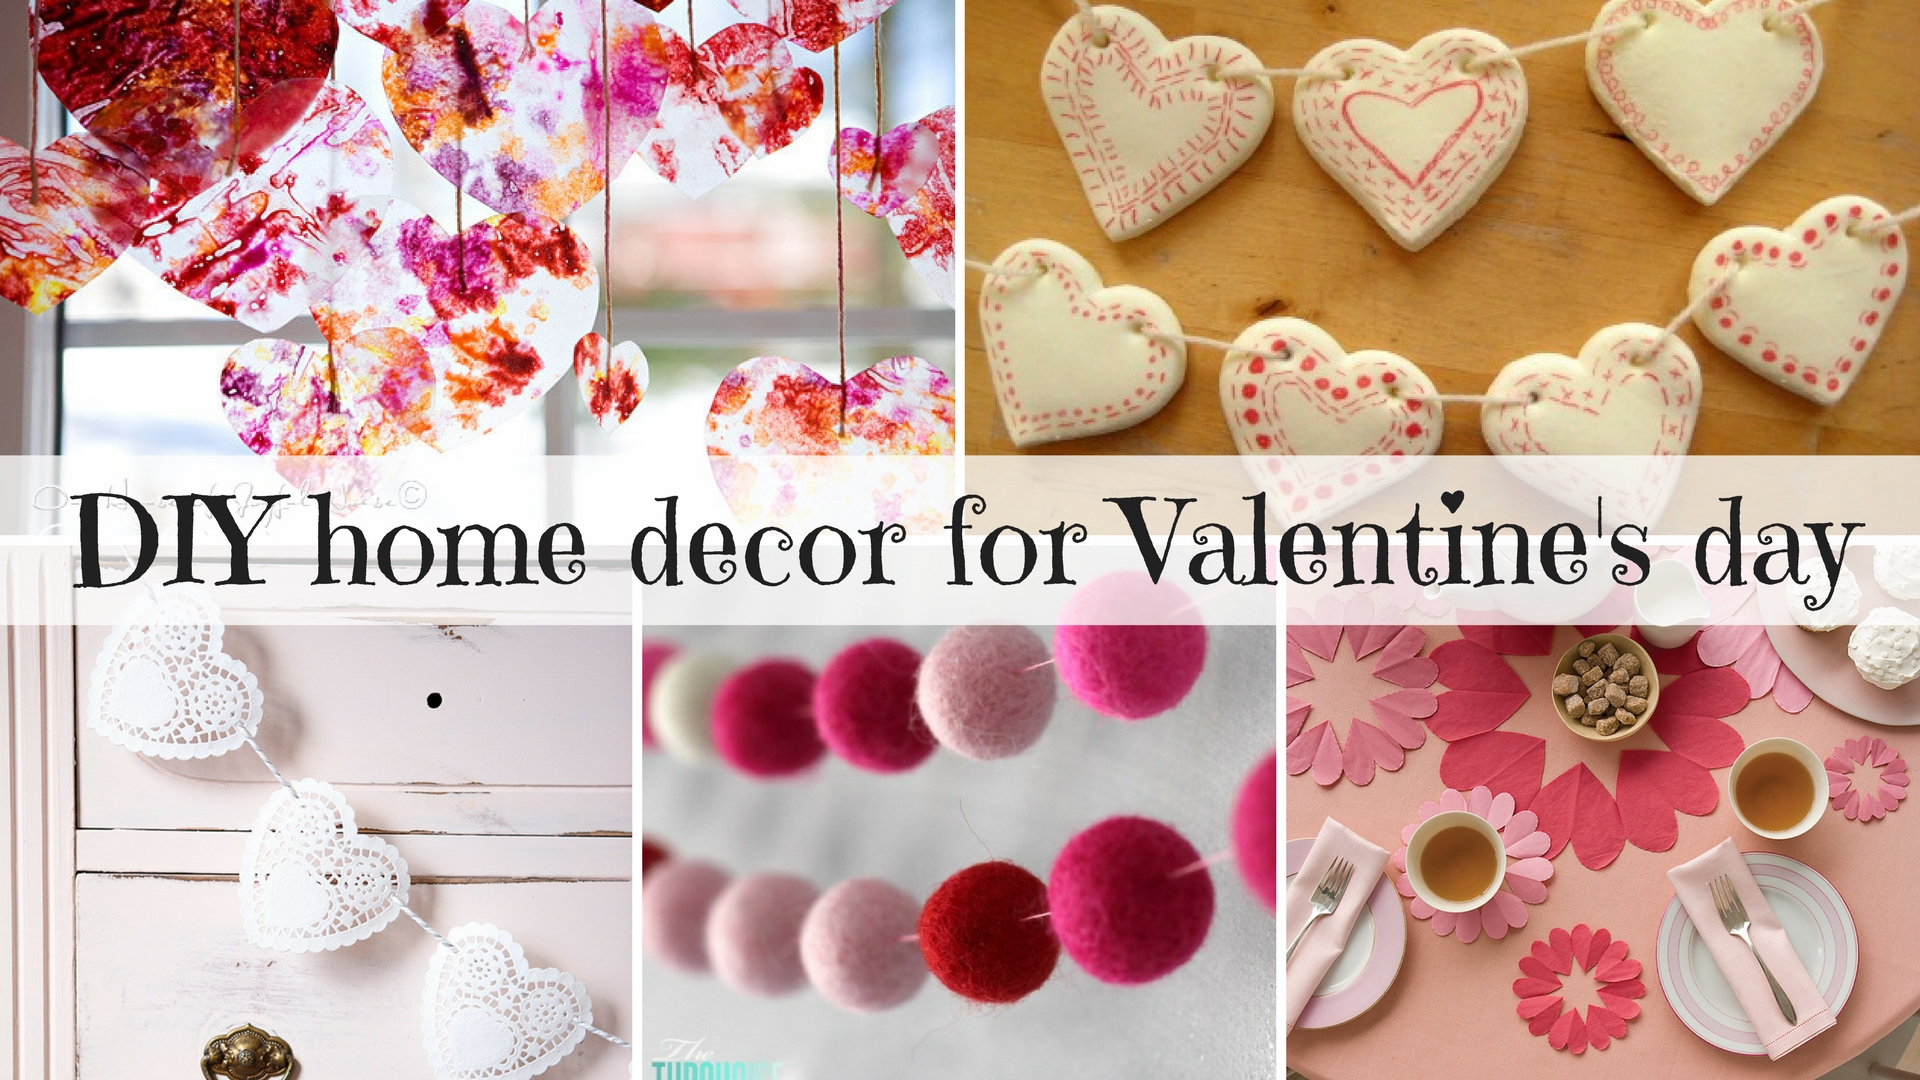 DIY home decor for Valentine's day (30+ great ideas!)